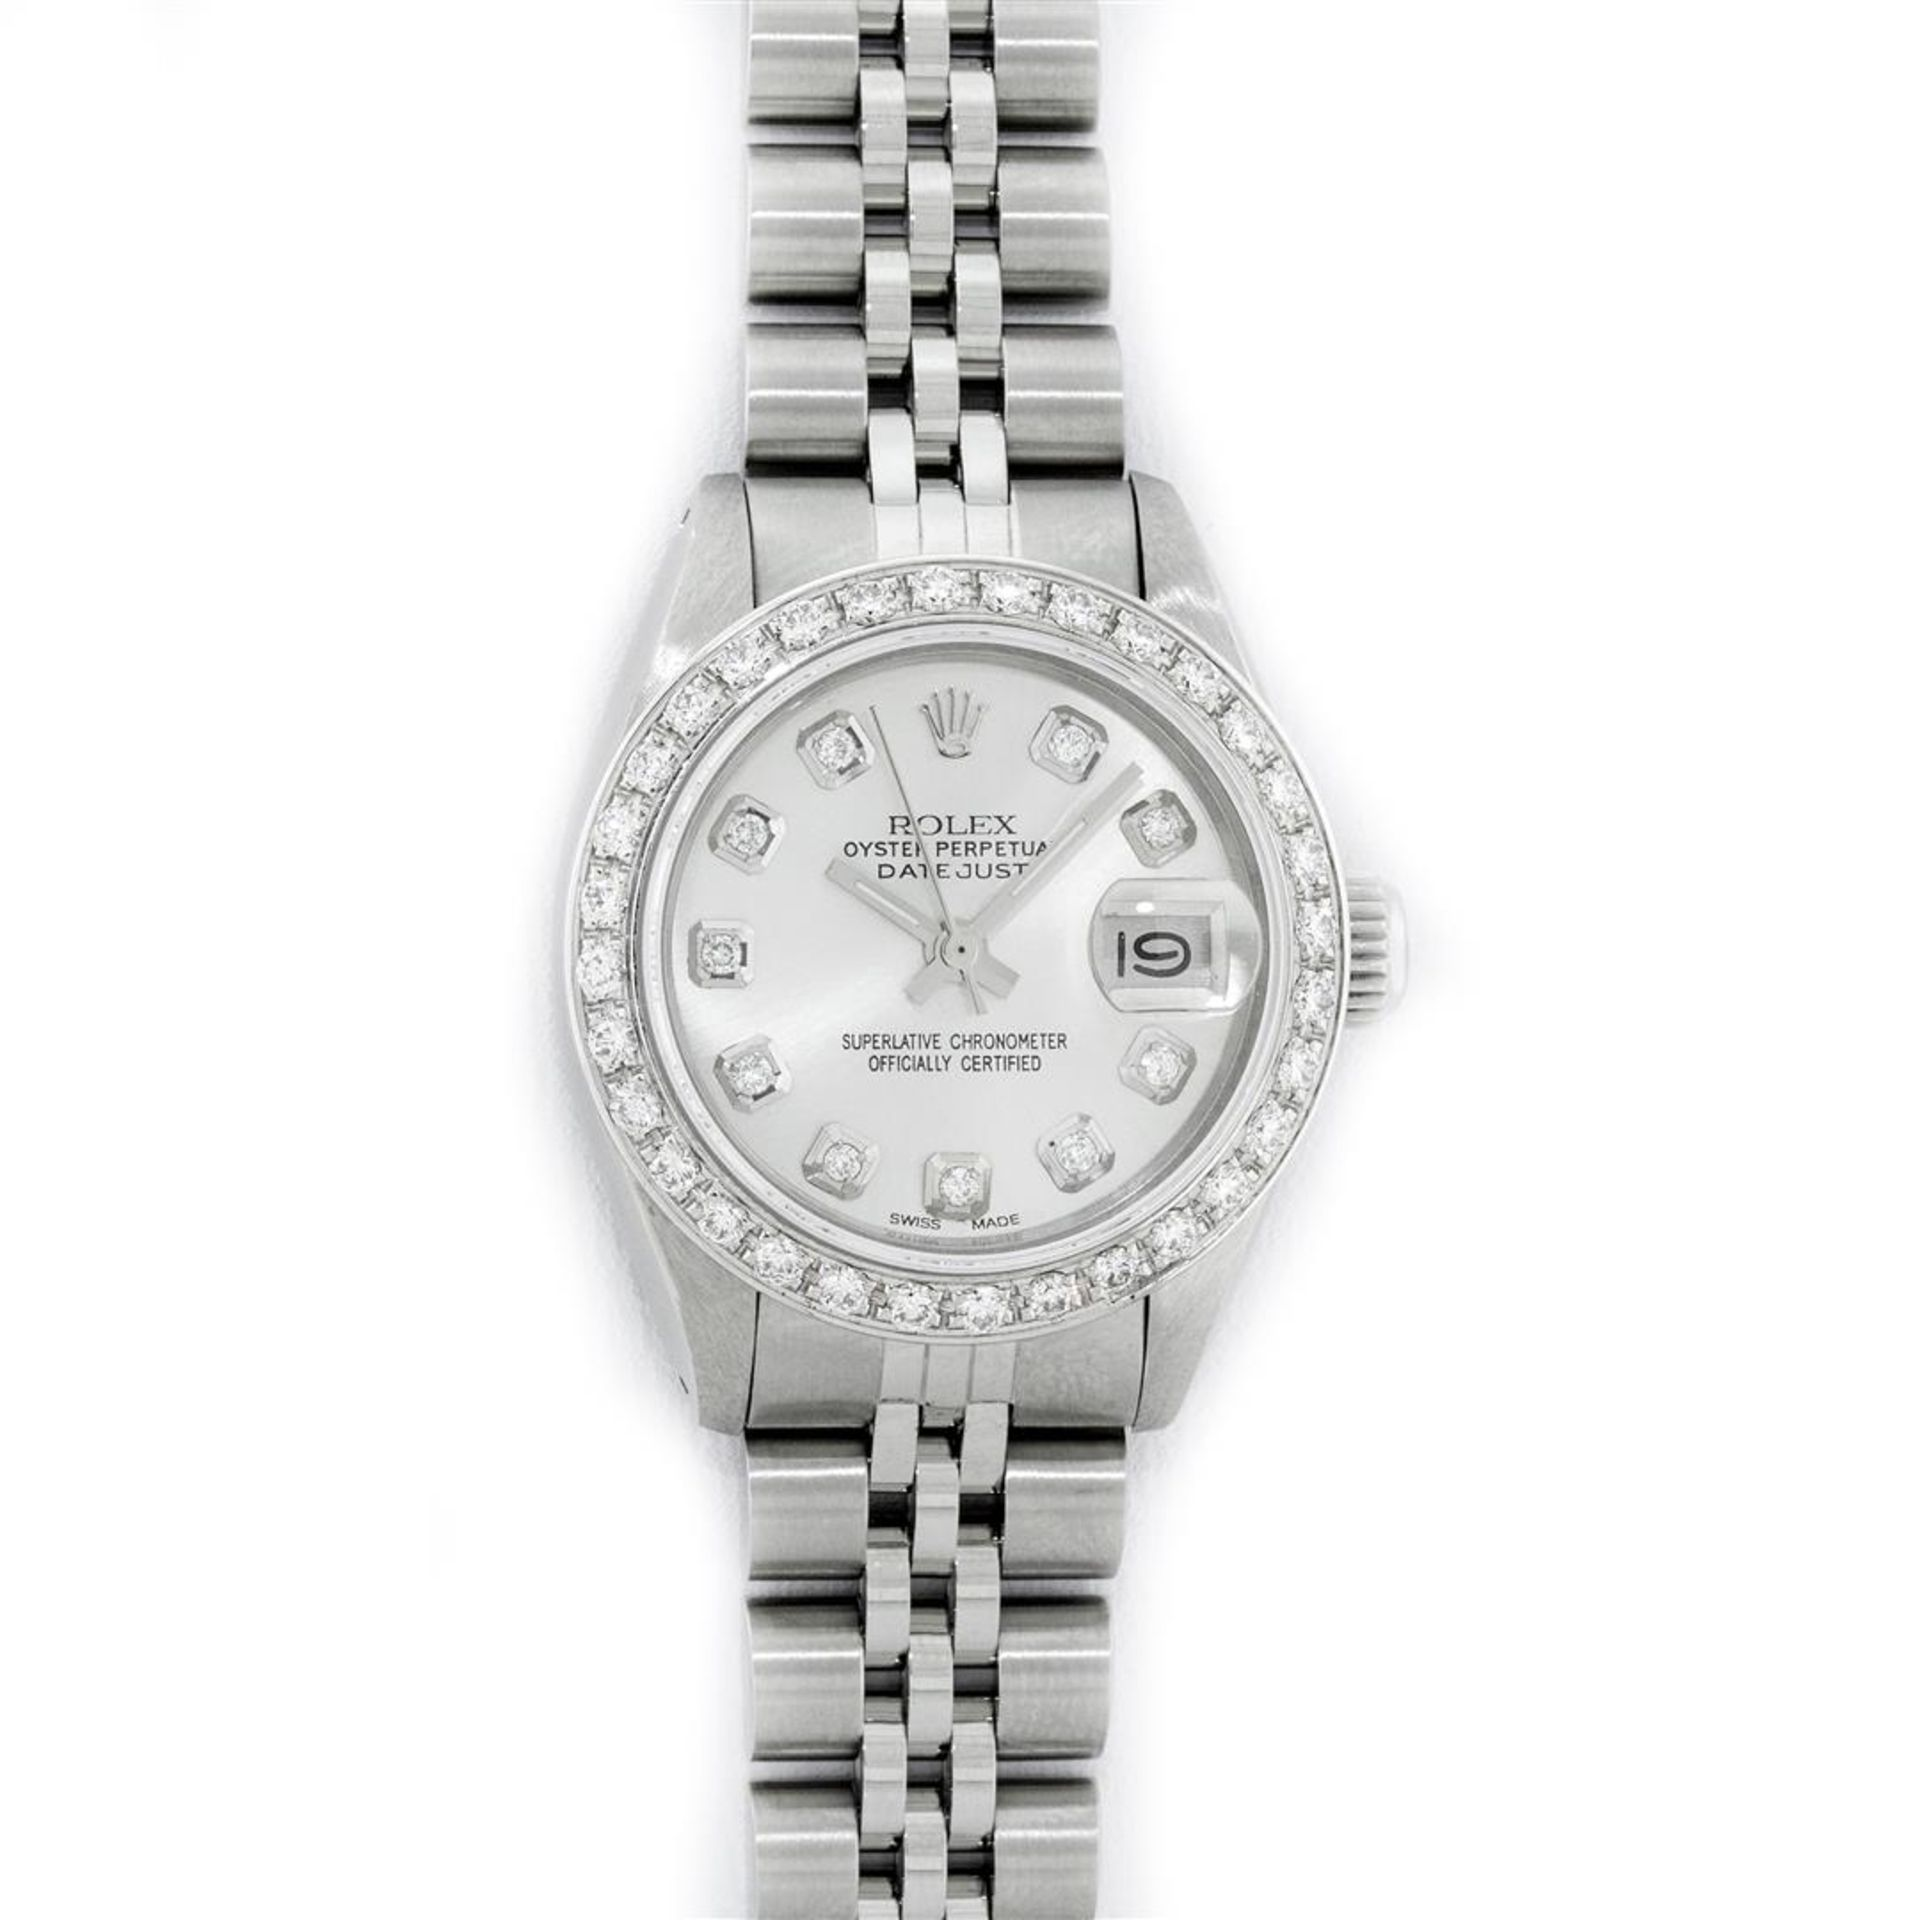 Rolex Ladies Stainless Steel Silver Diamond 26MM Oyster Perpetual Datejust - Image 2 of 9